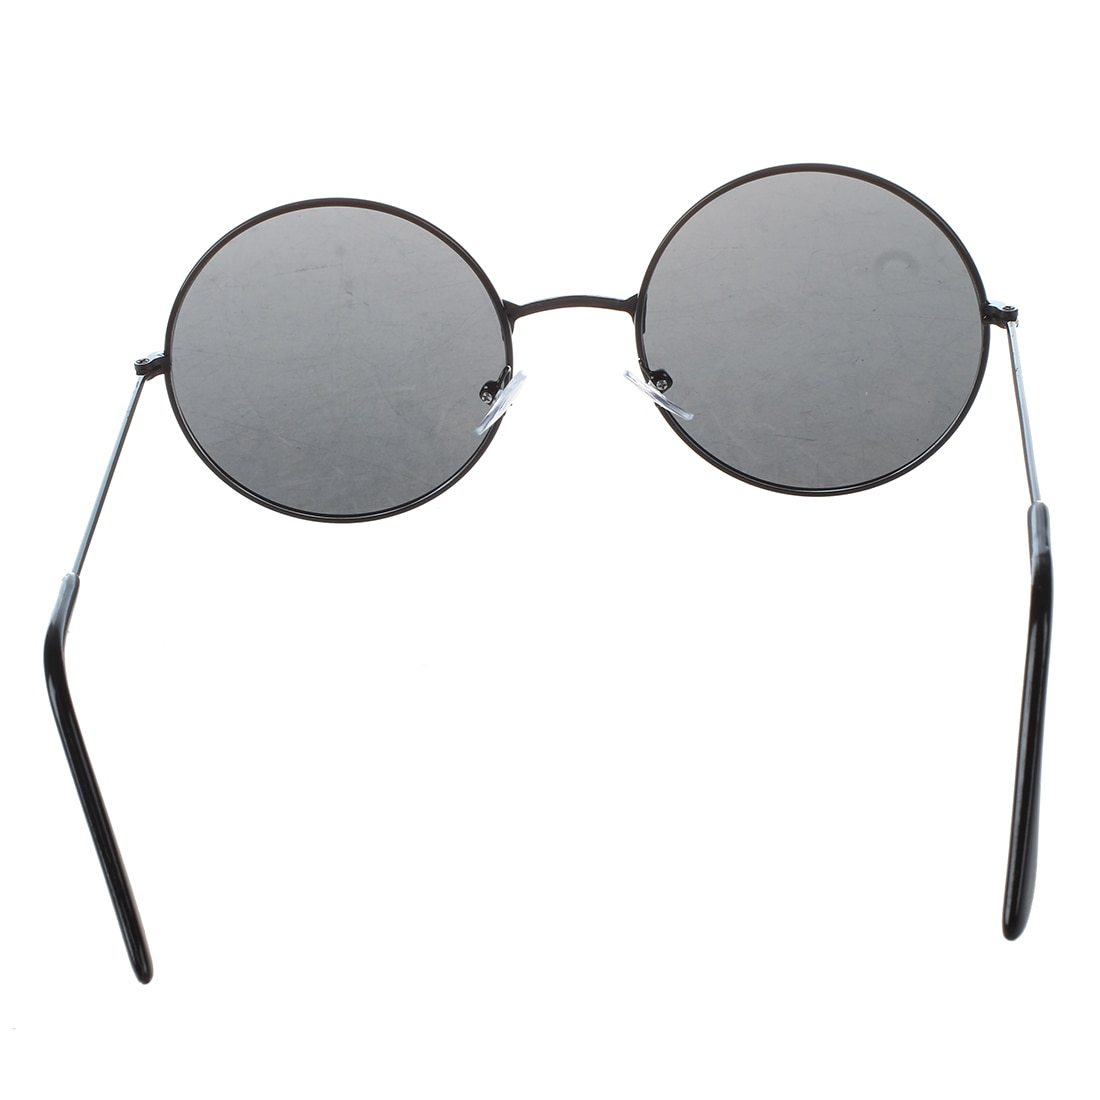 Trendy Men Women Metal Frame Black Lens Round Sunglasses Glasses Eyeweareosegal-eosegal